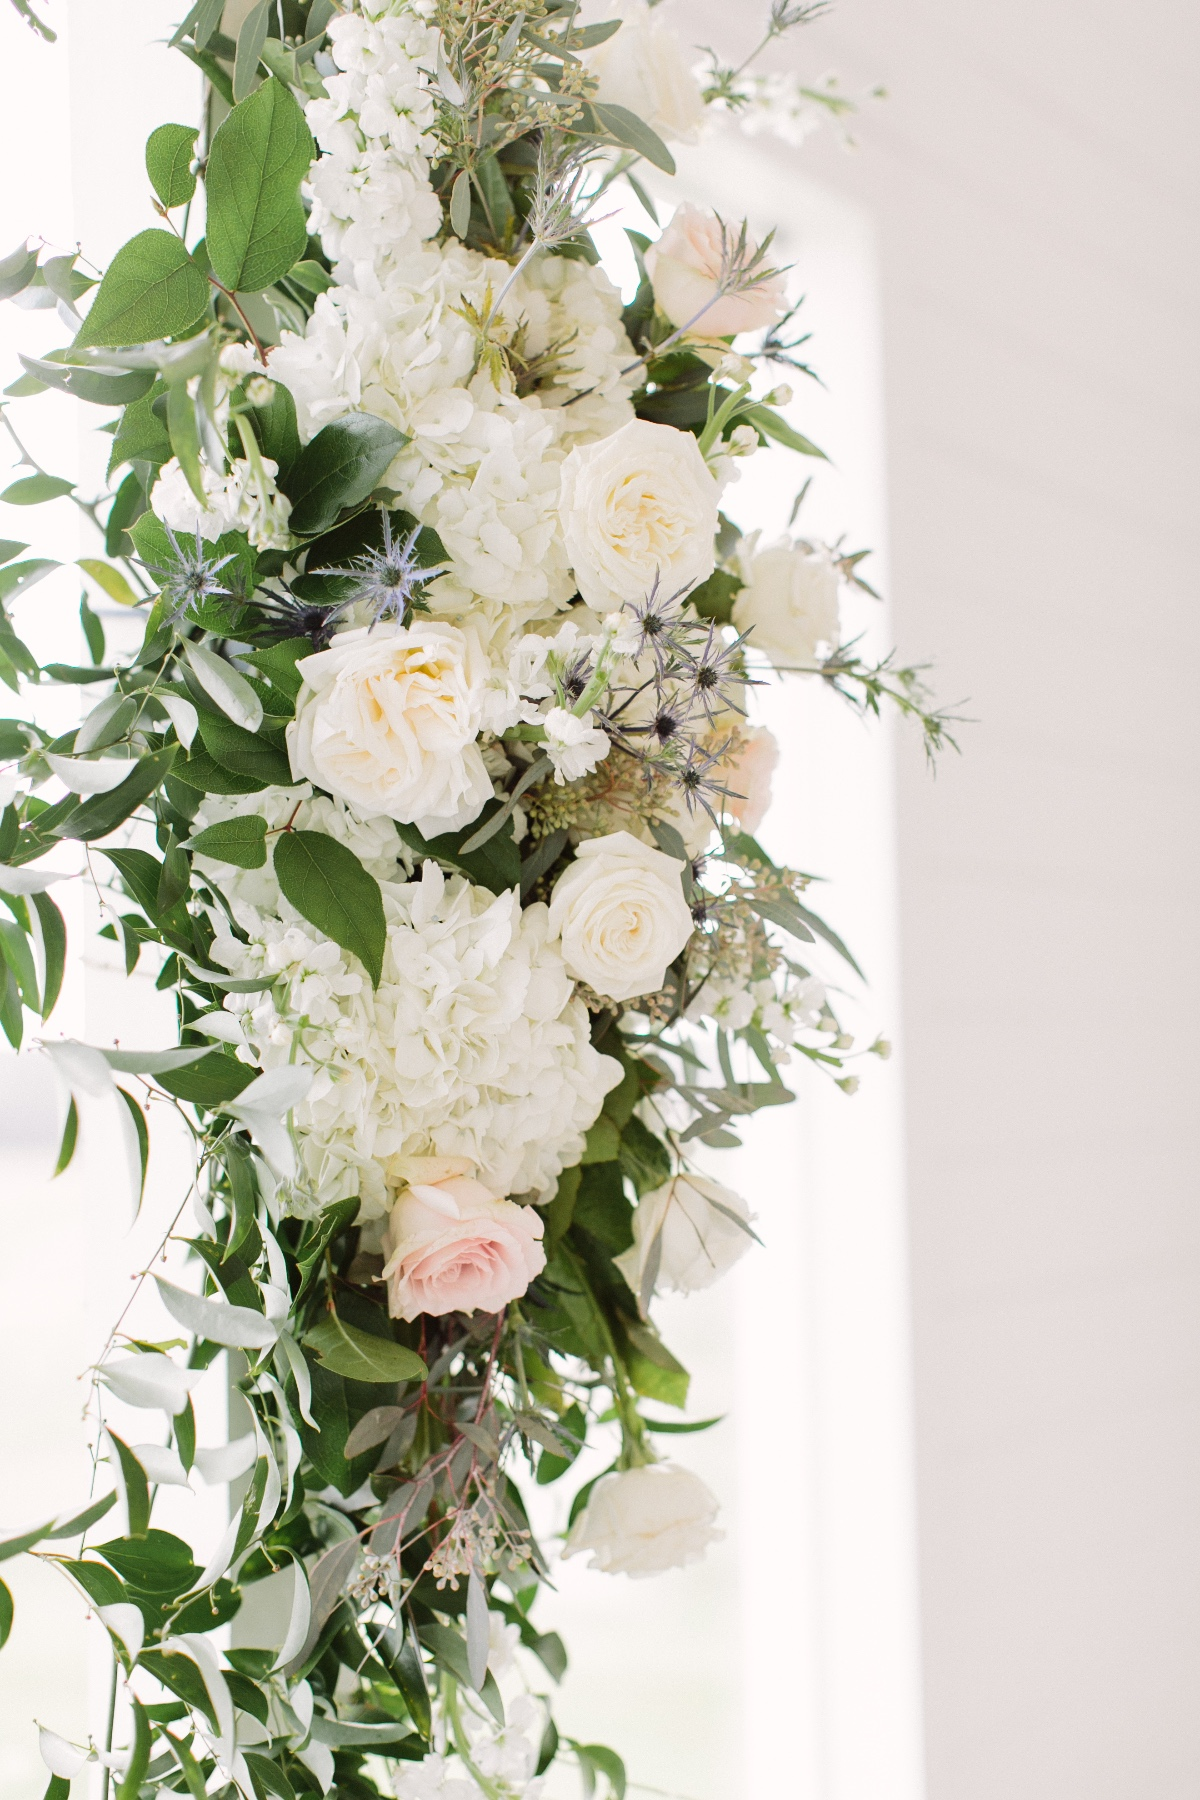 white and green florals for ceremony backdrop